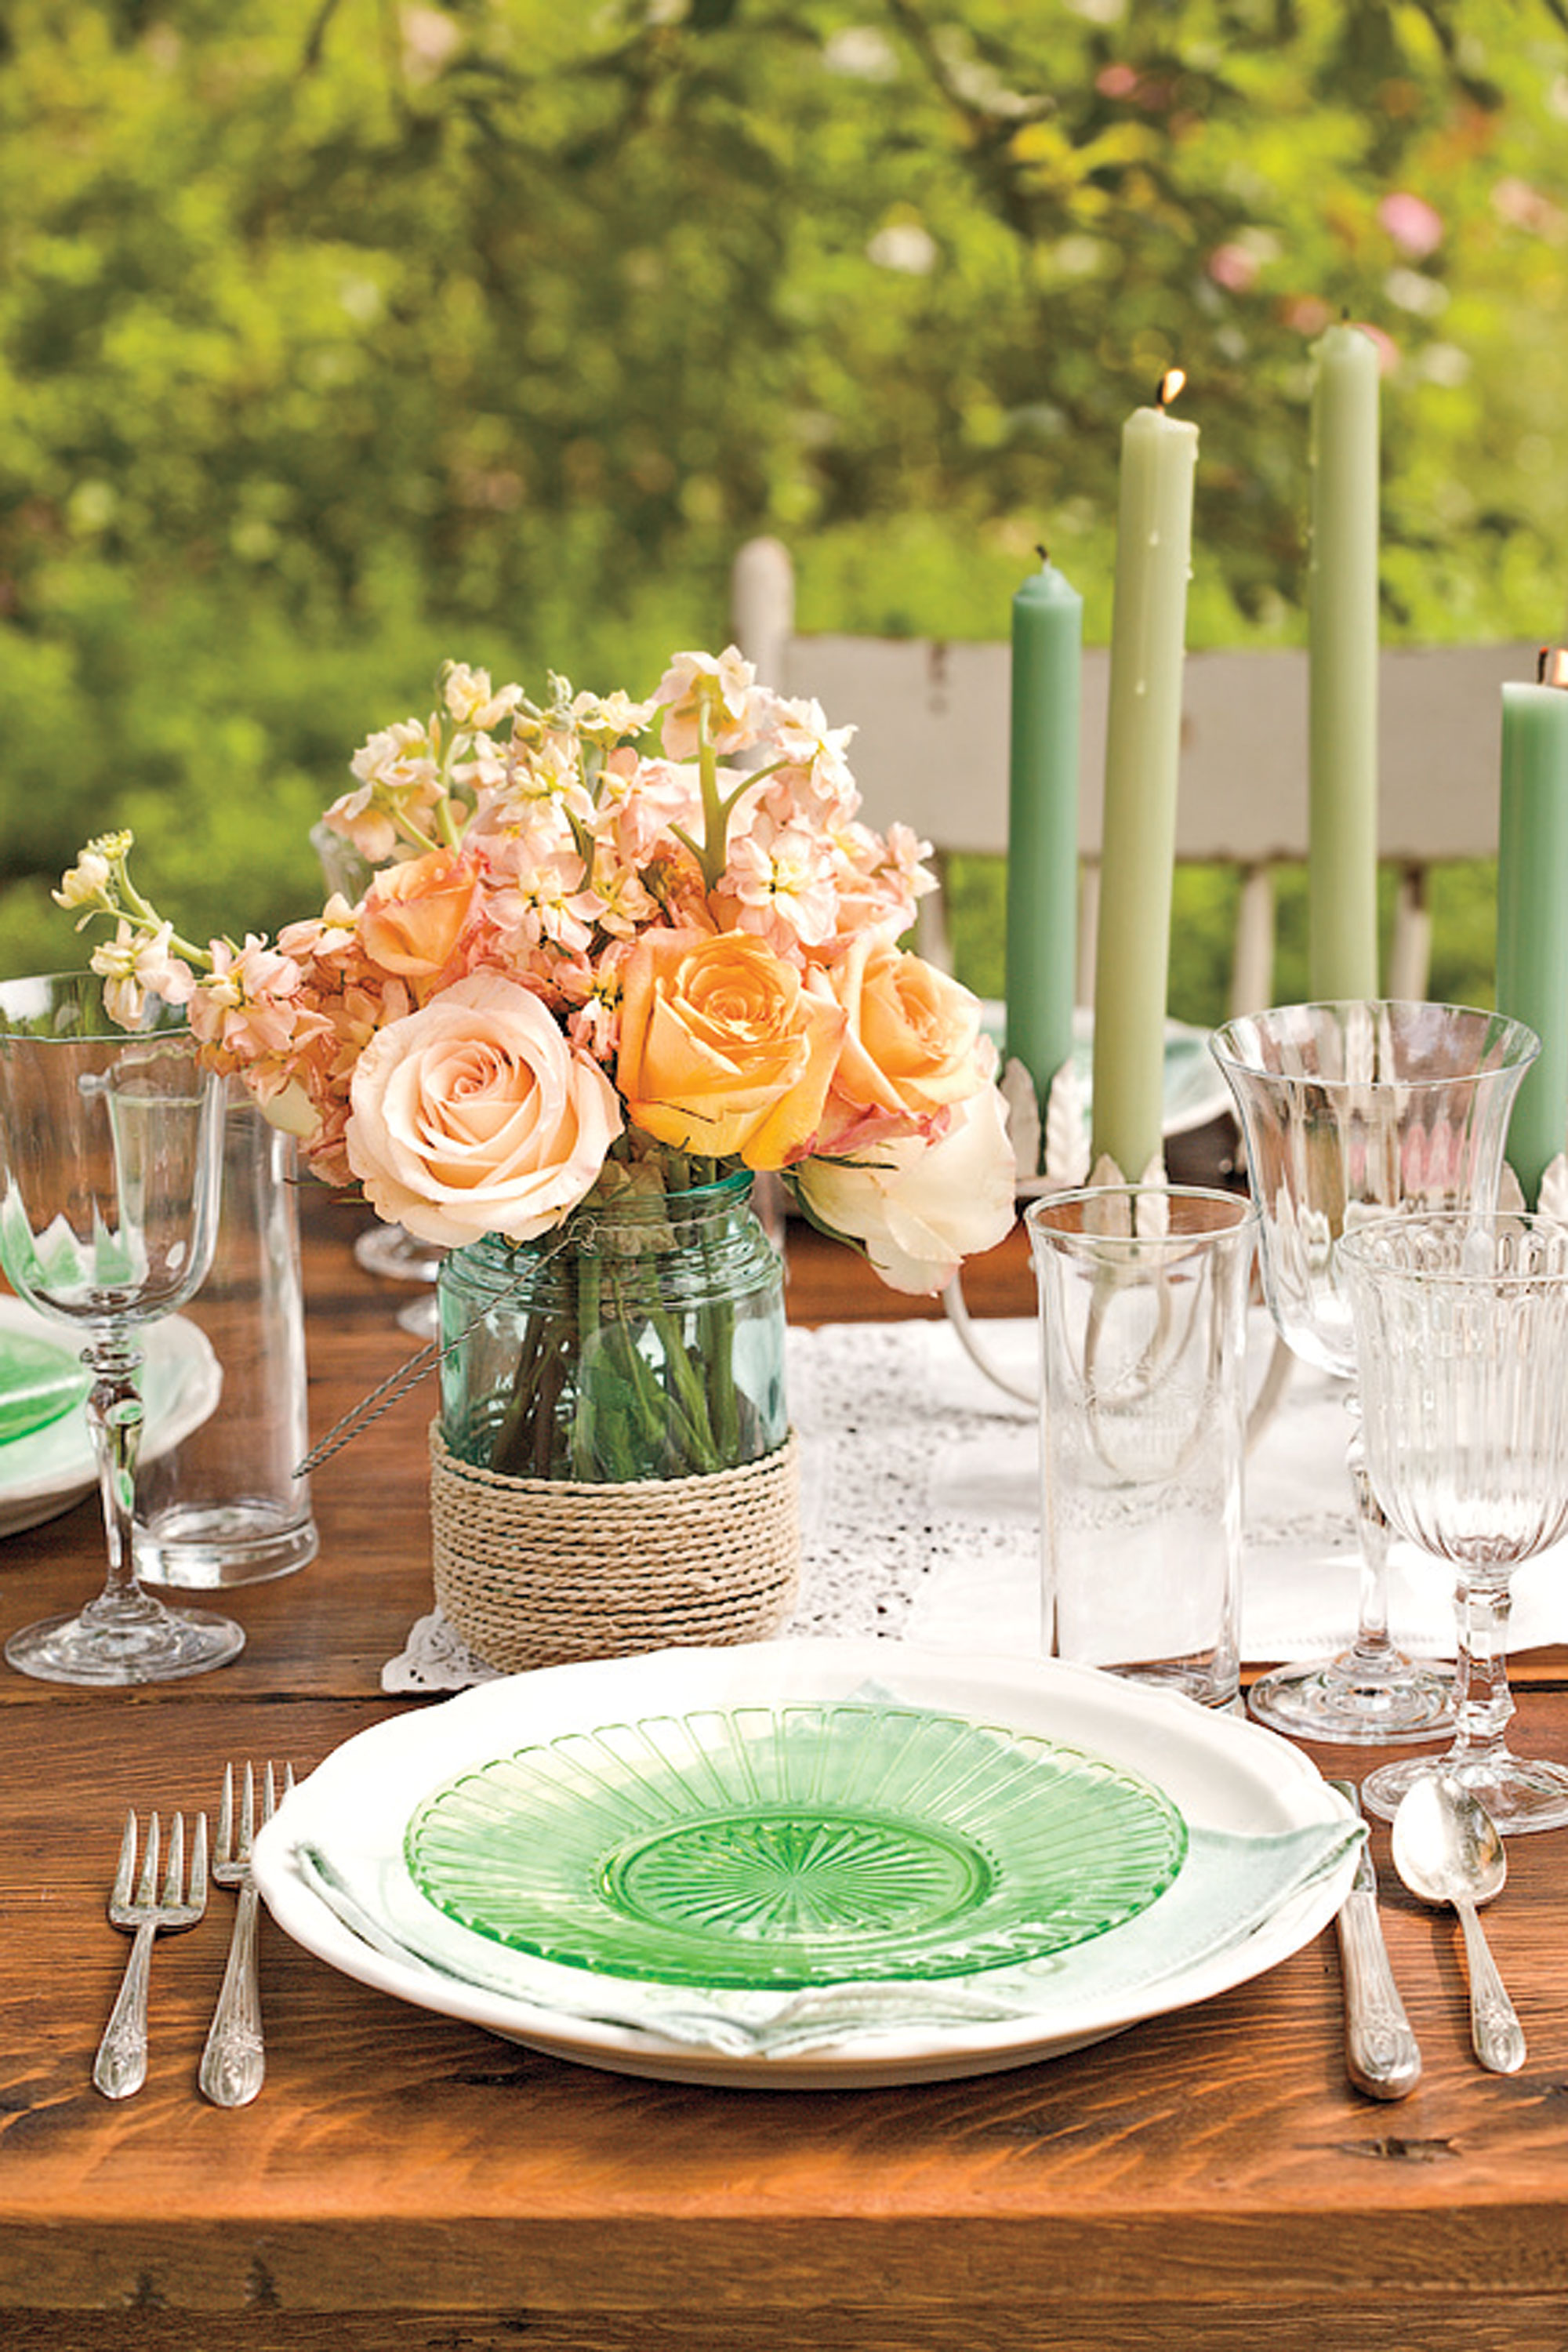 58 Spring Centerpieces And Table Decorations   Ideas For Spring Table  Settings